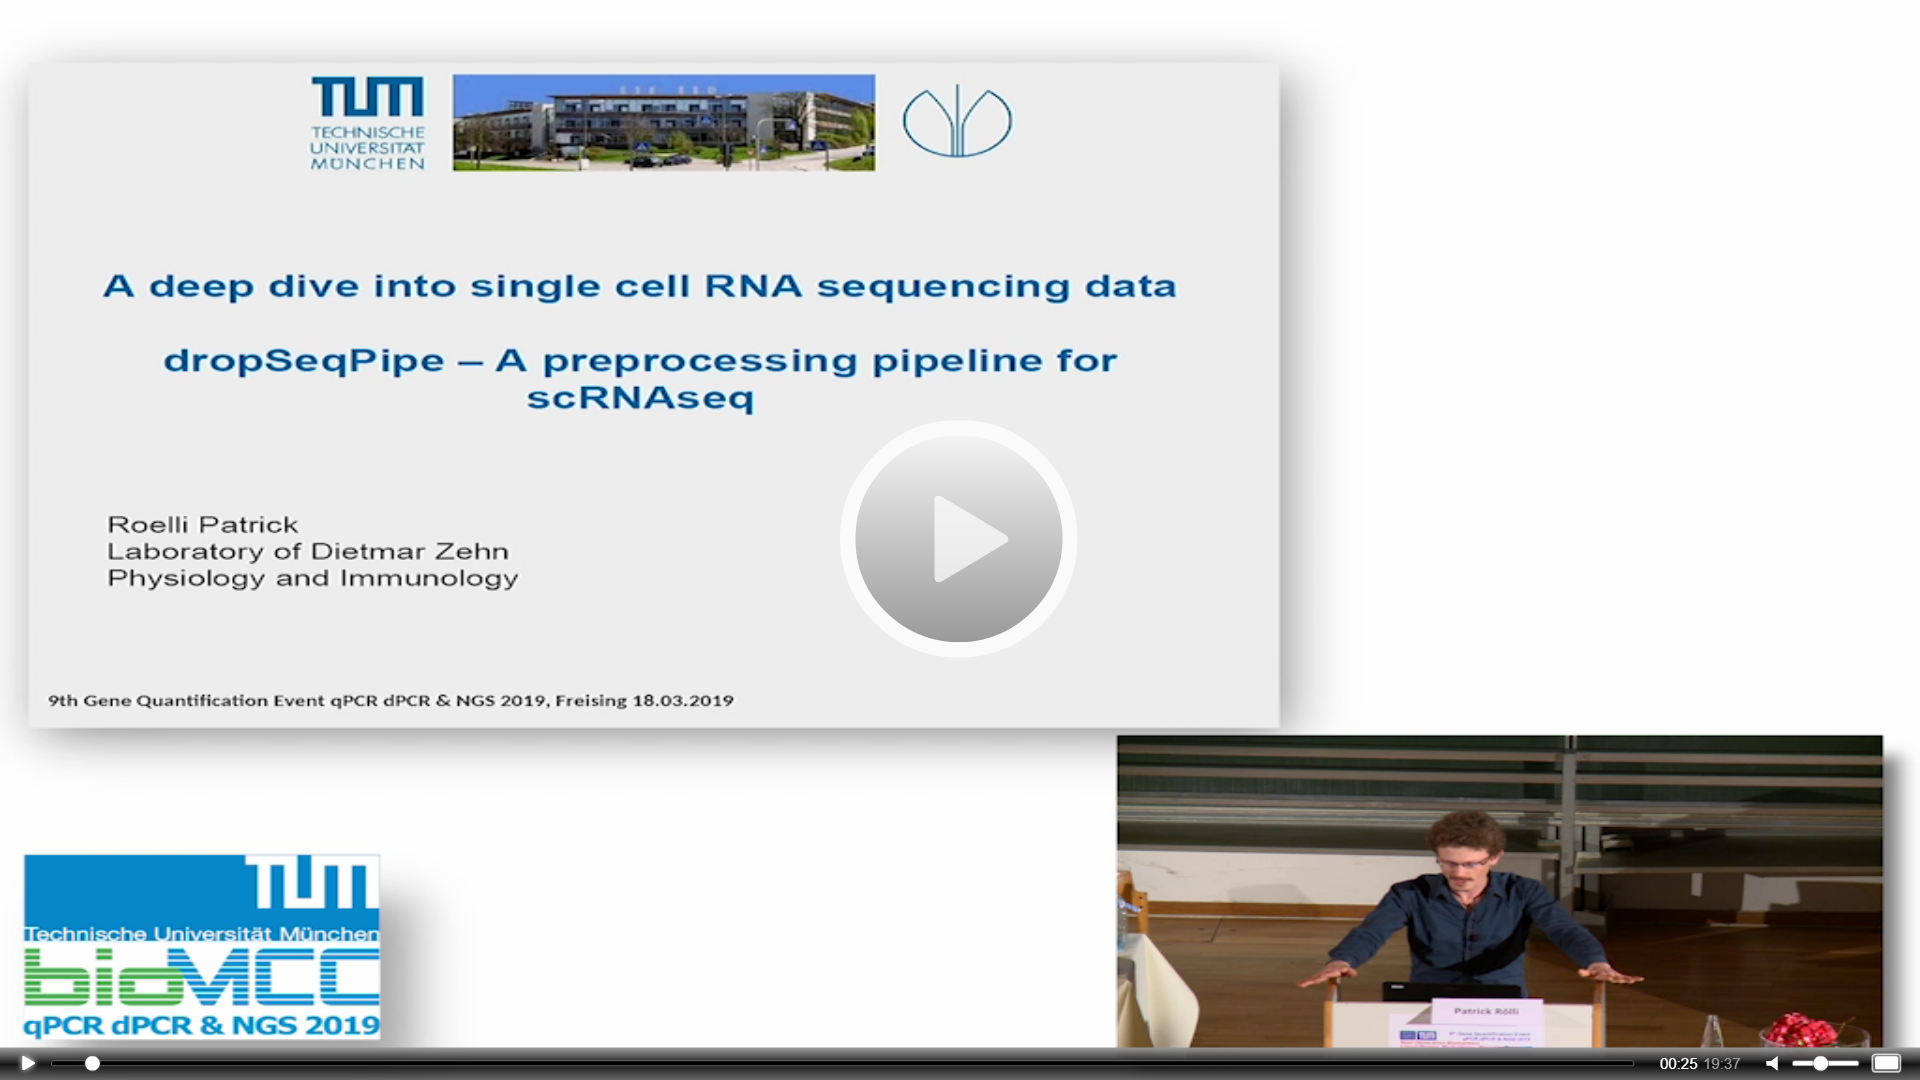 A Deep Dive Into Single Cell RNA Sequencing Data